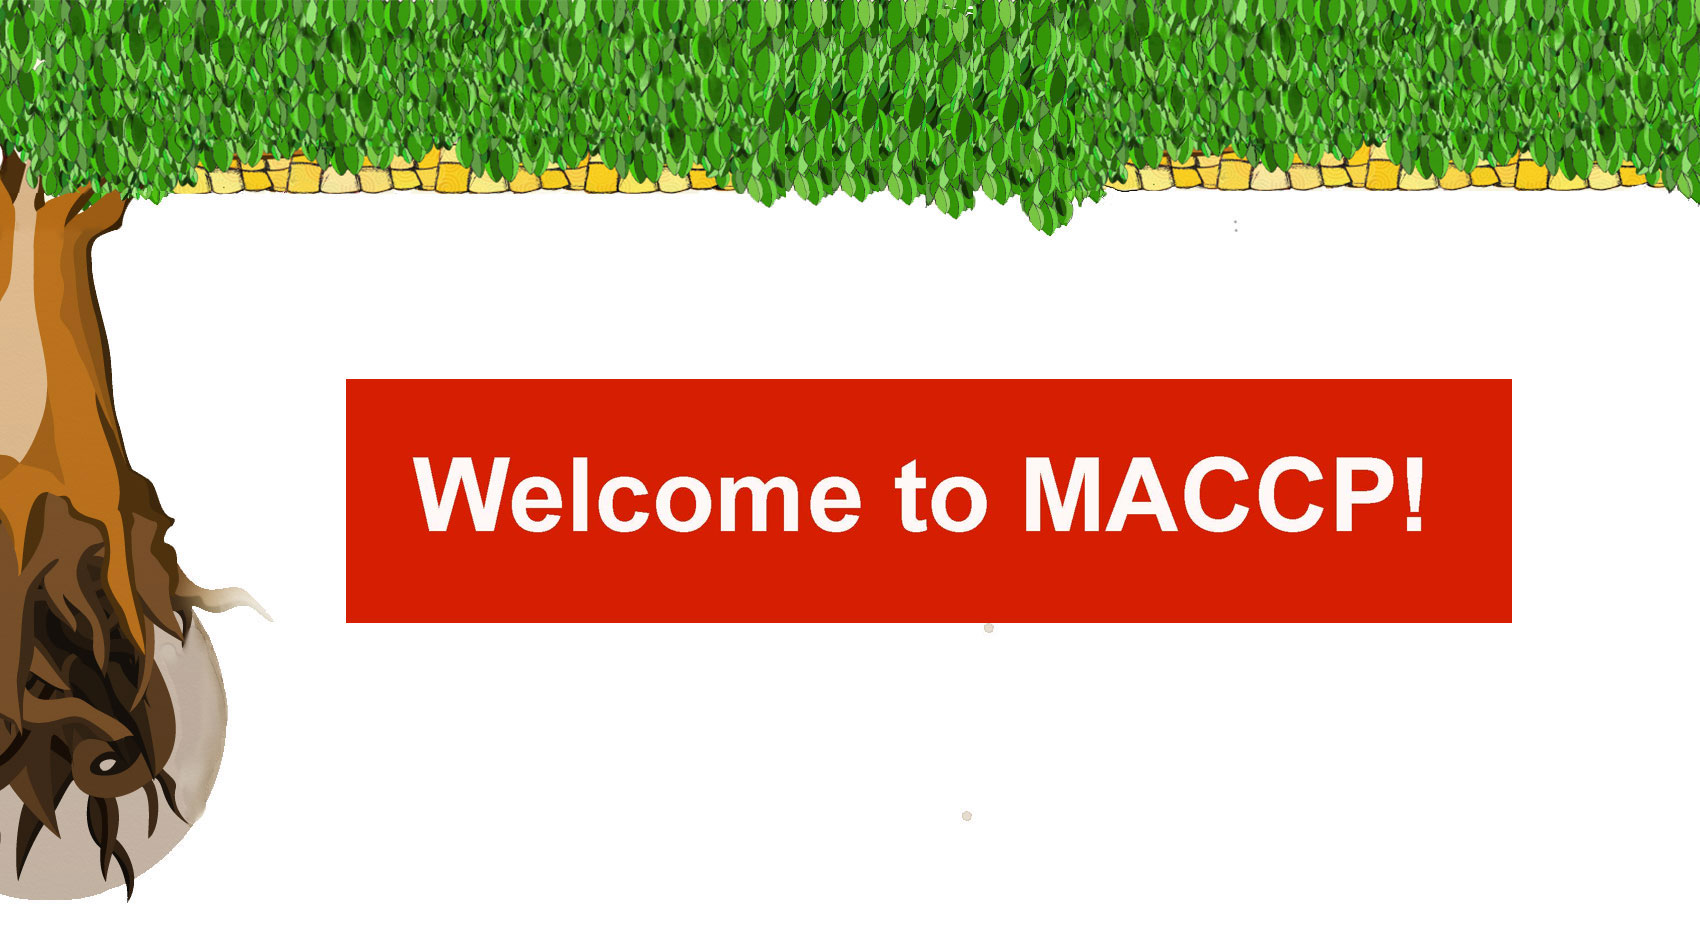 Welcome to MACCP!